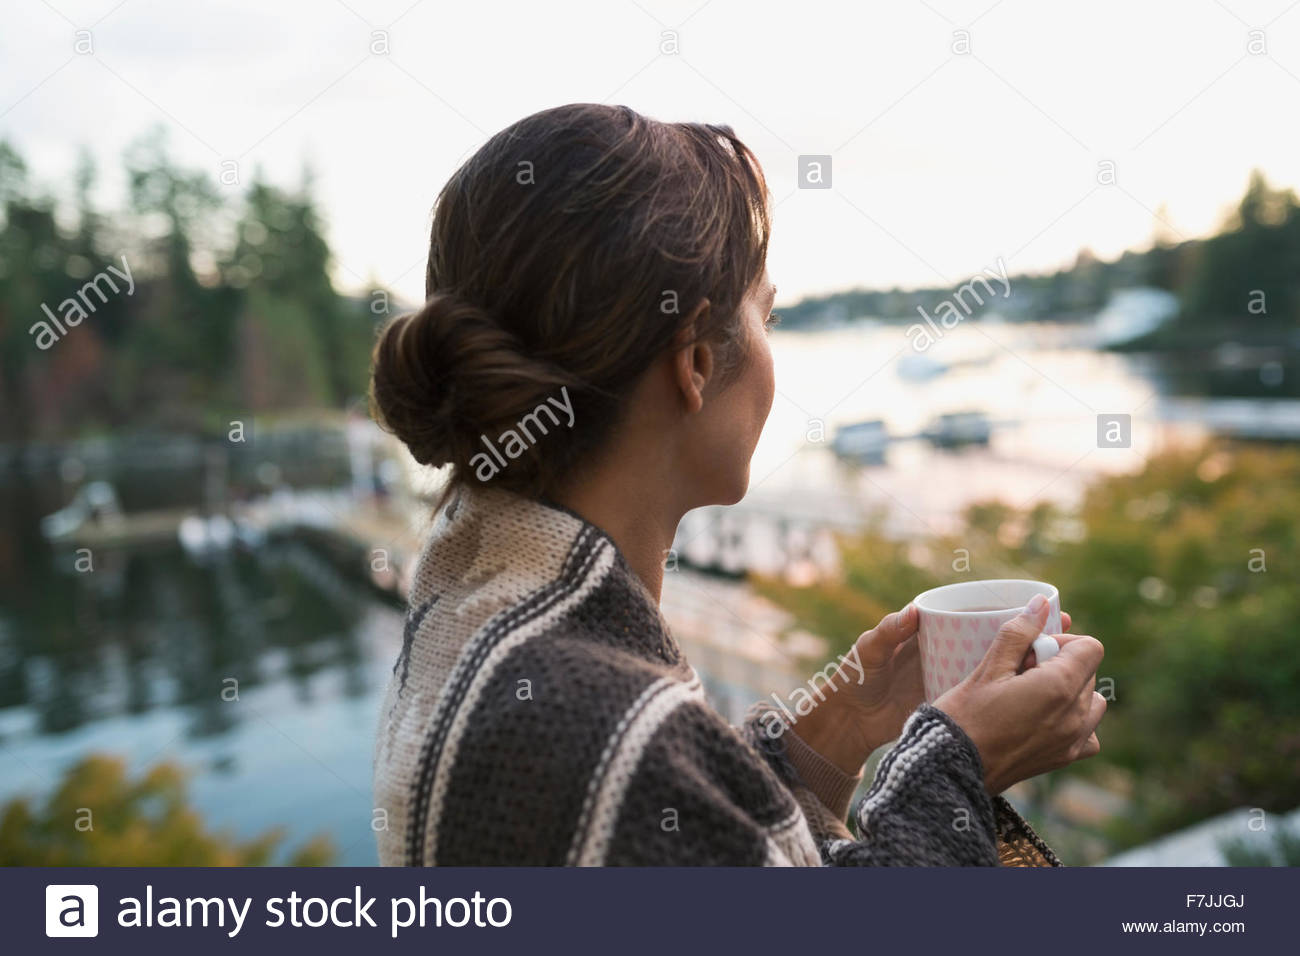 Serene woman drinking coffee looking at lake view - Stock Image